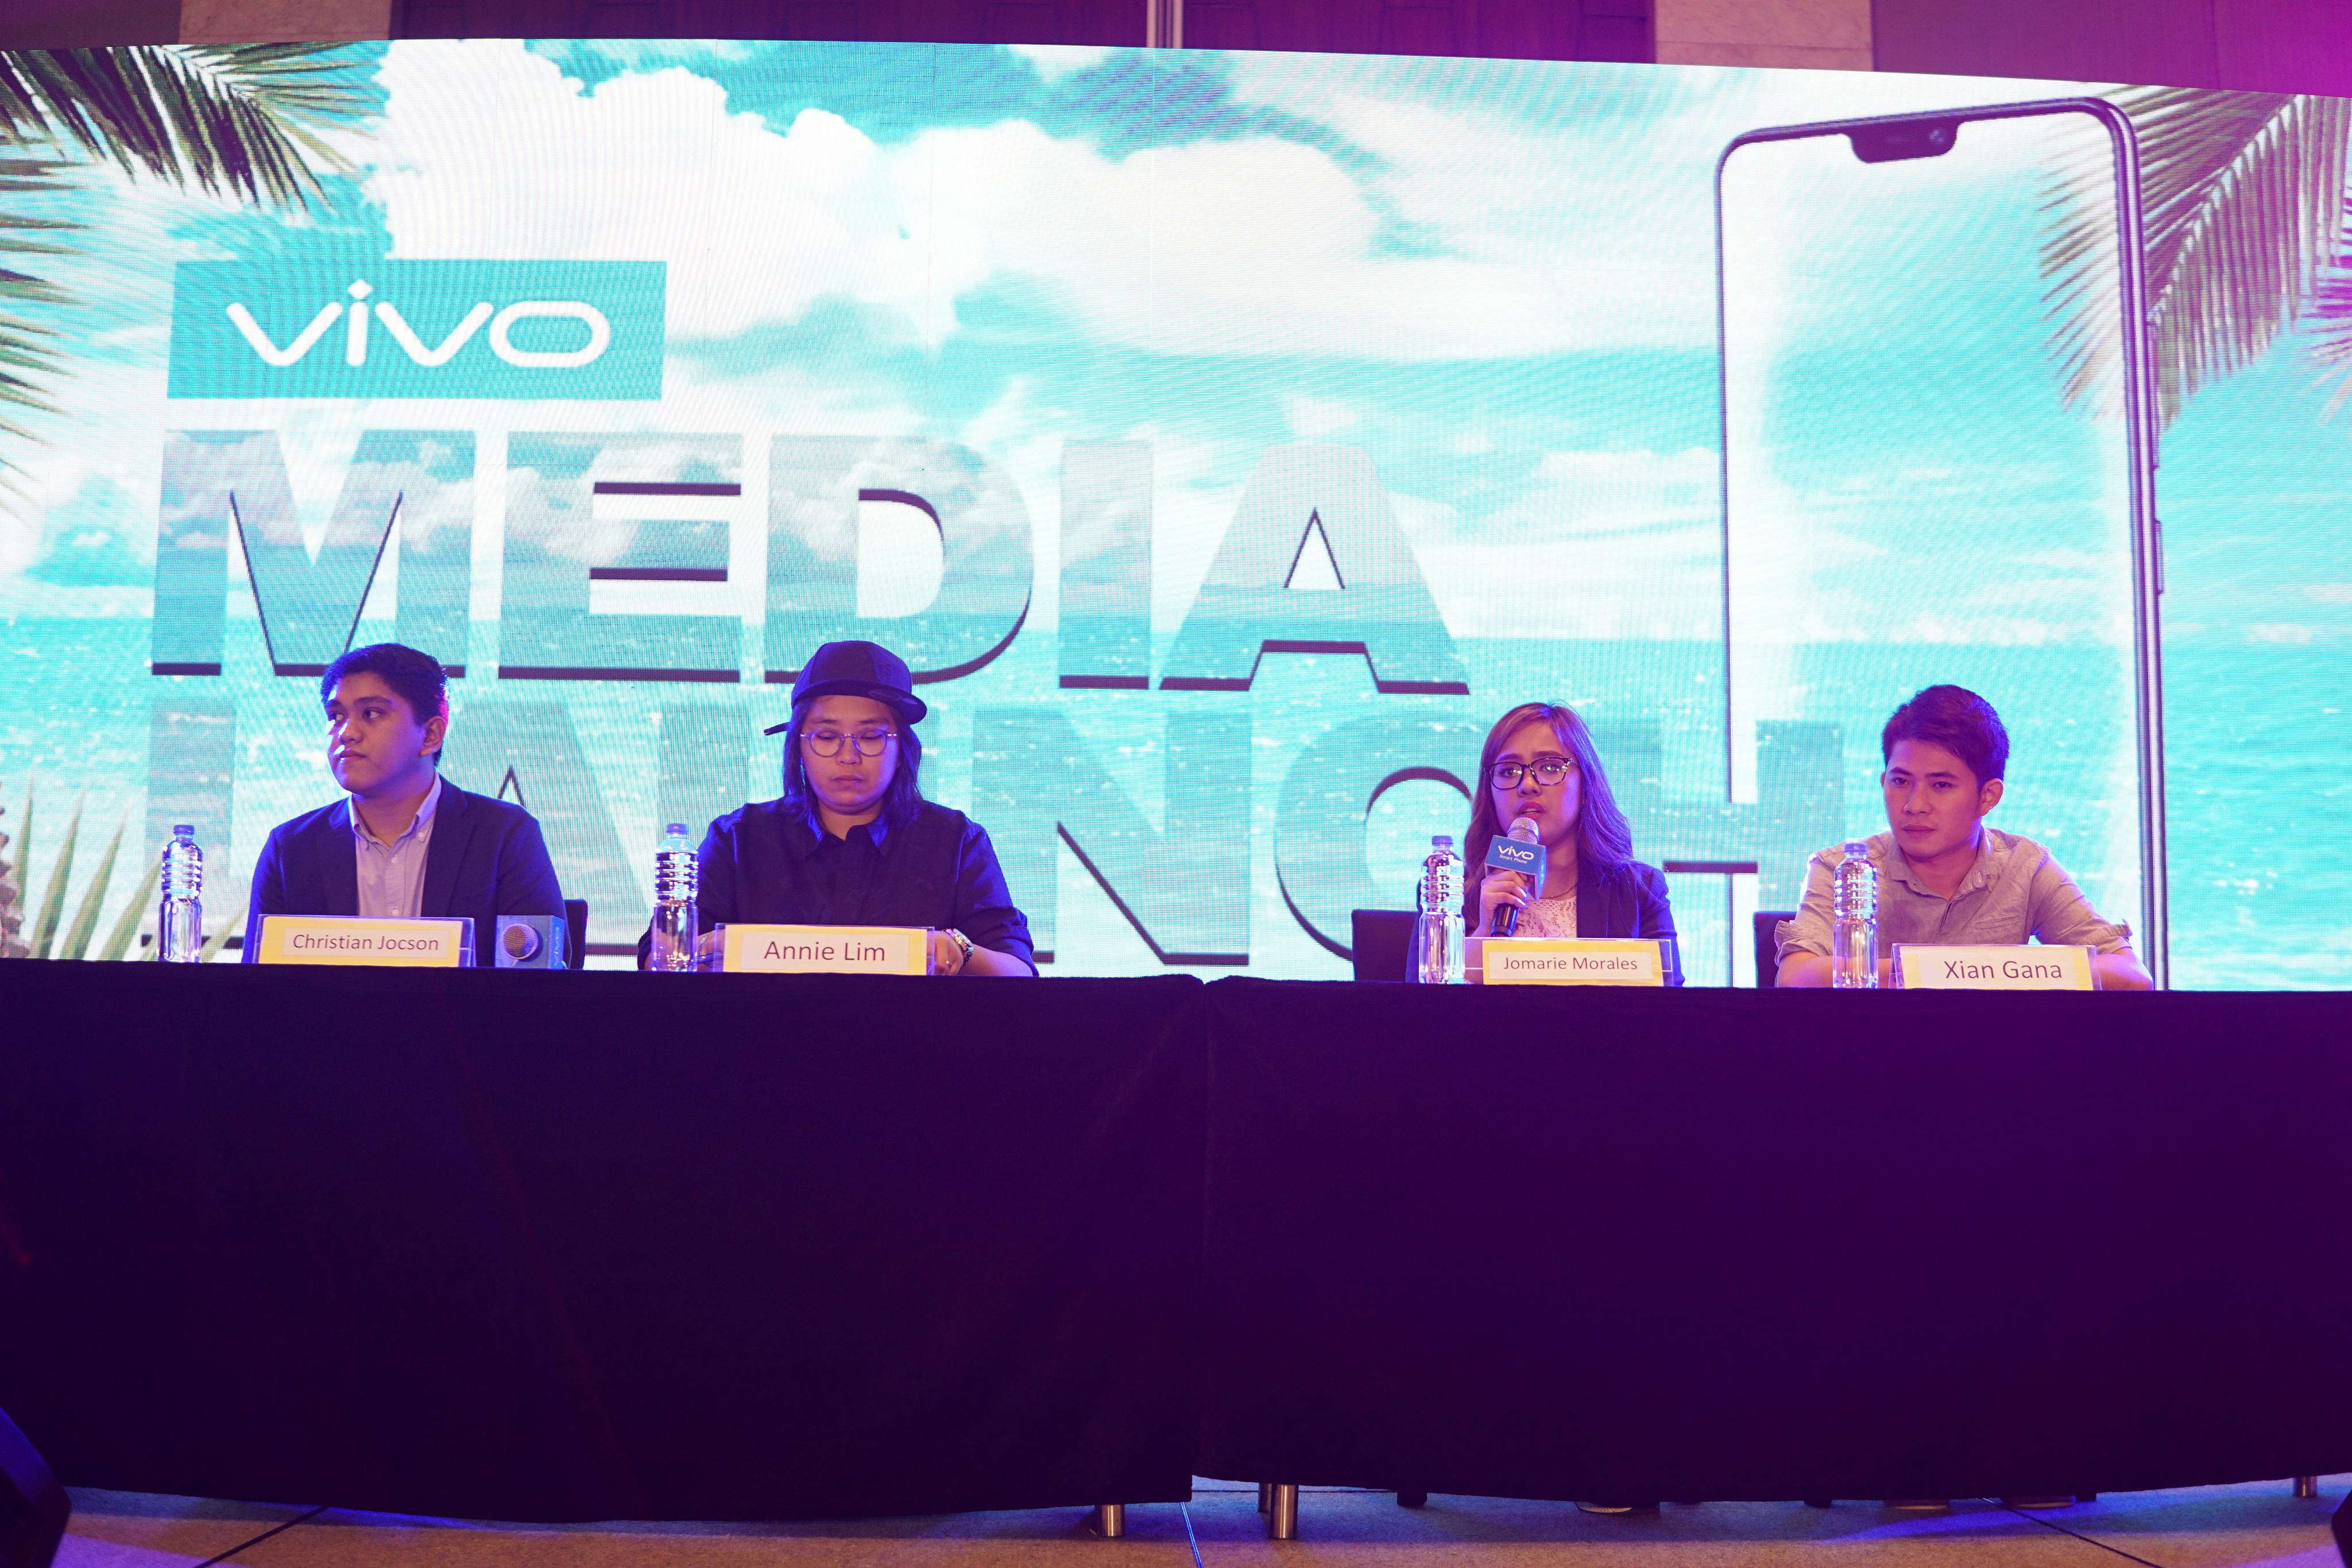 Lim, Morales, Jocson, and Xian Gana from Vivo then answered the media's questions during the Q&A.